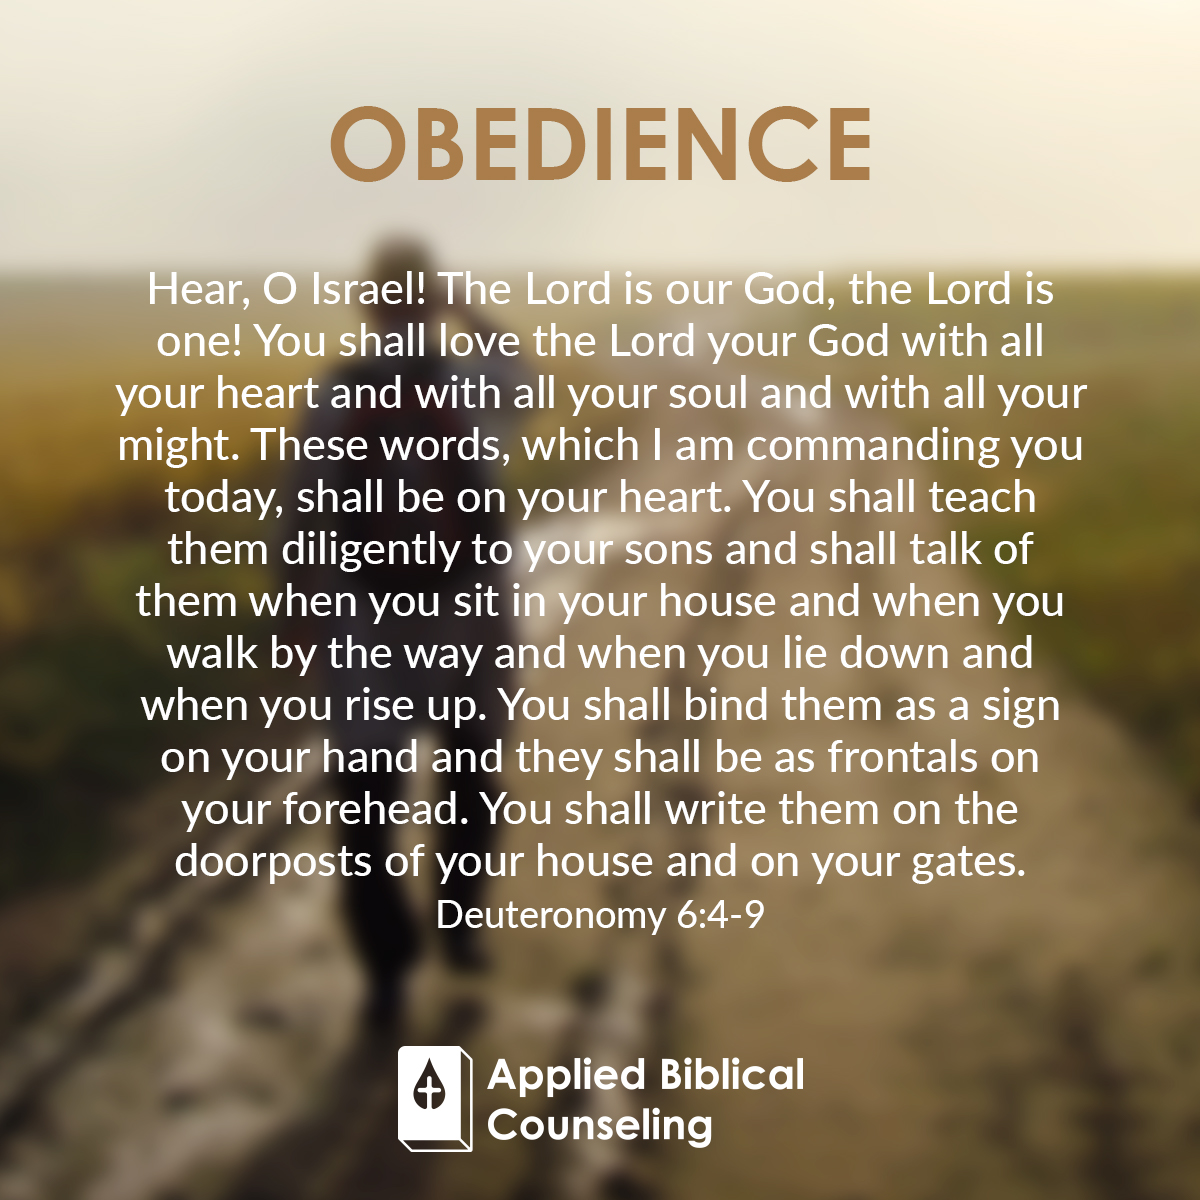 Applied Biblical Counseling Facebook w23 Obedience 1